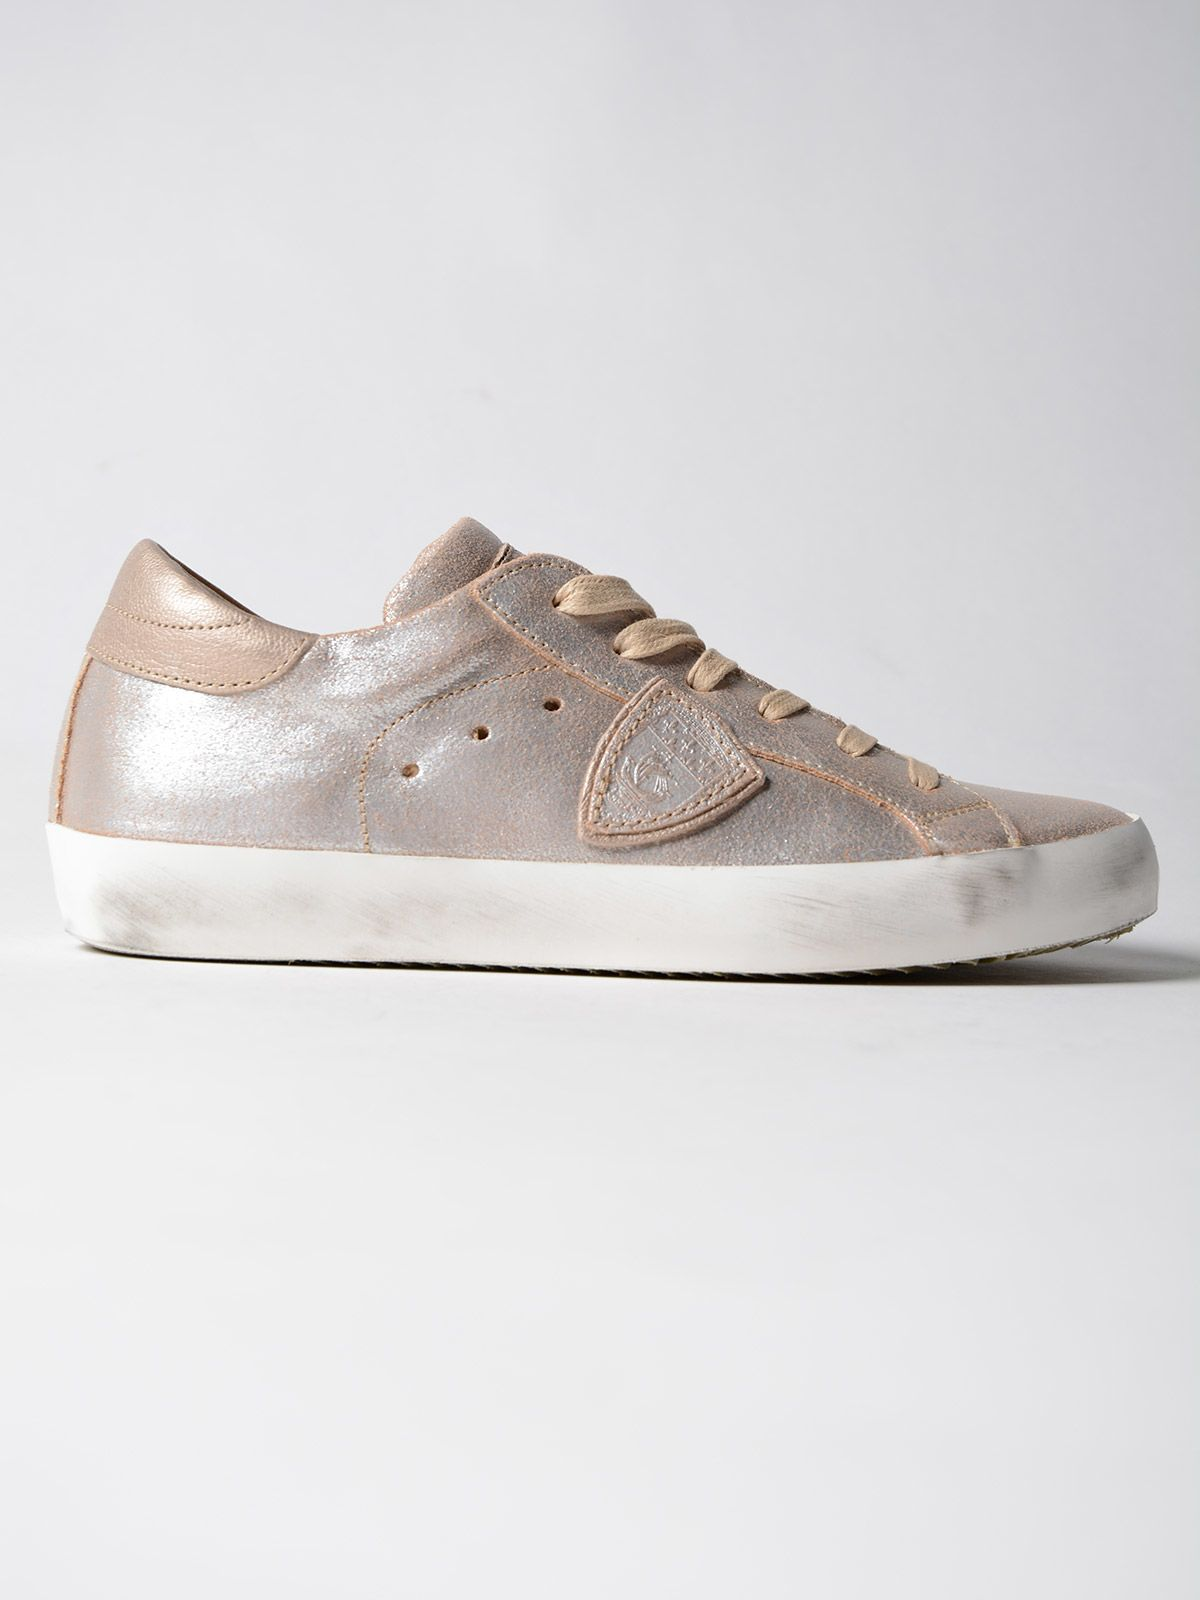 Paris sneakers - Nude & Neutrals Philippe Model eU1zMq2imf